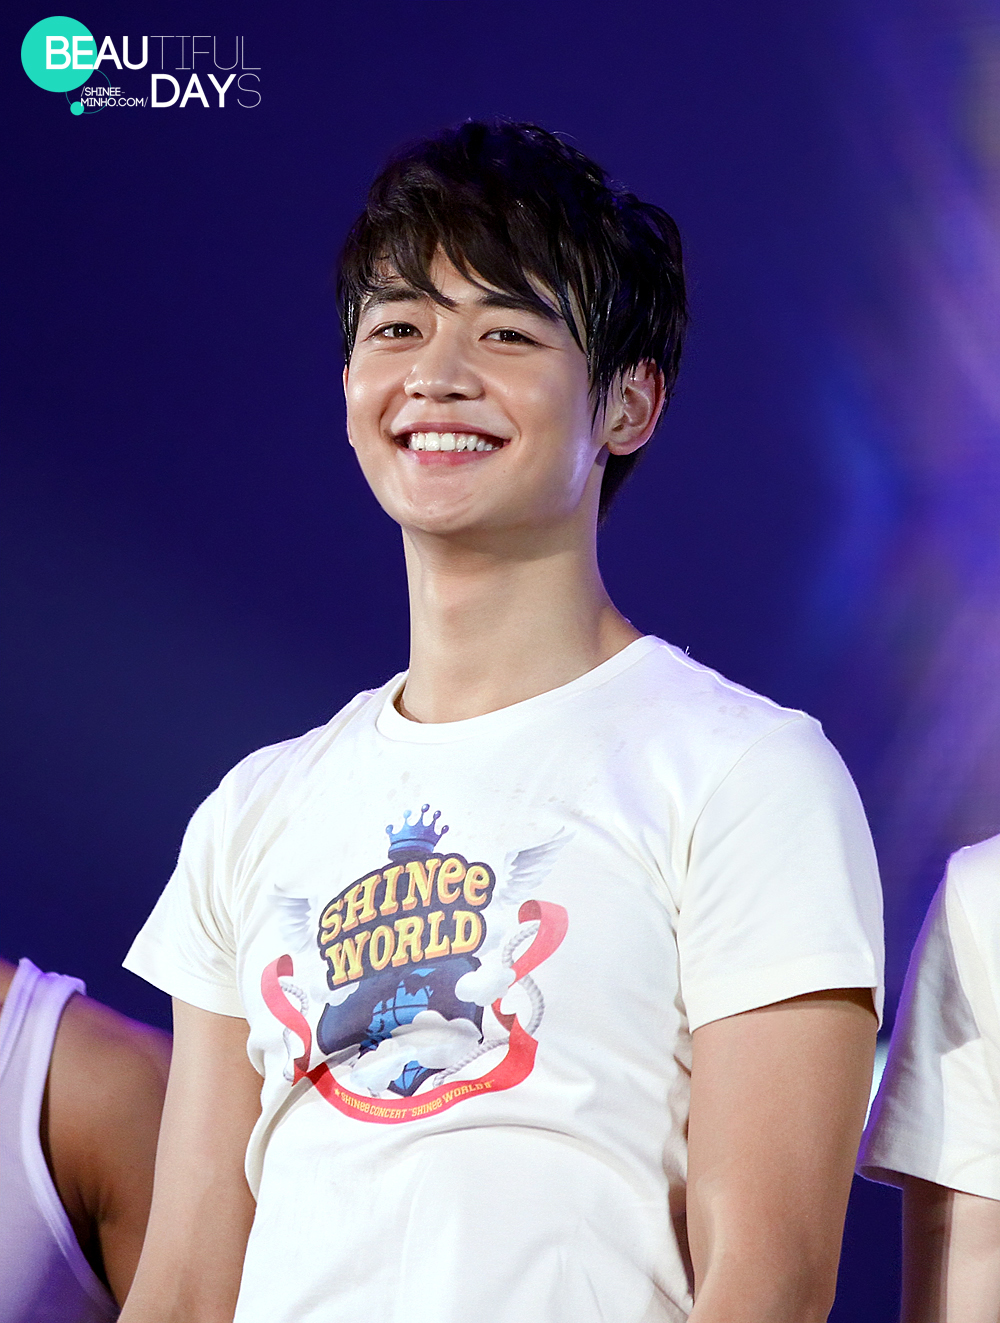 Minho tumblr blogs